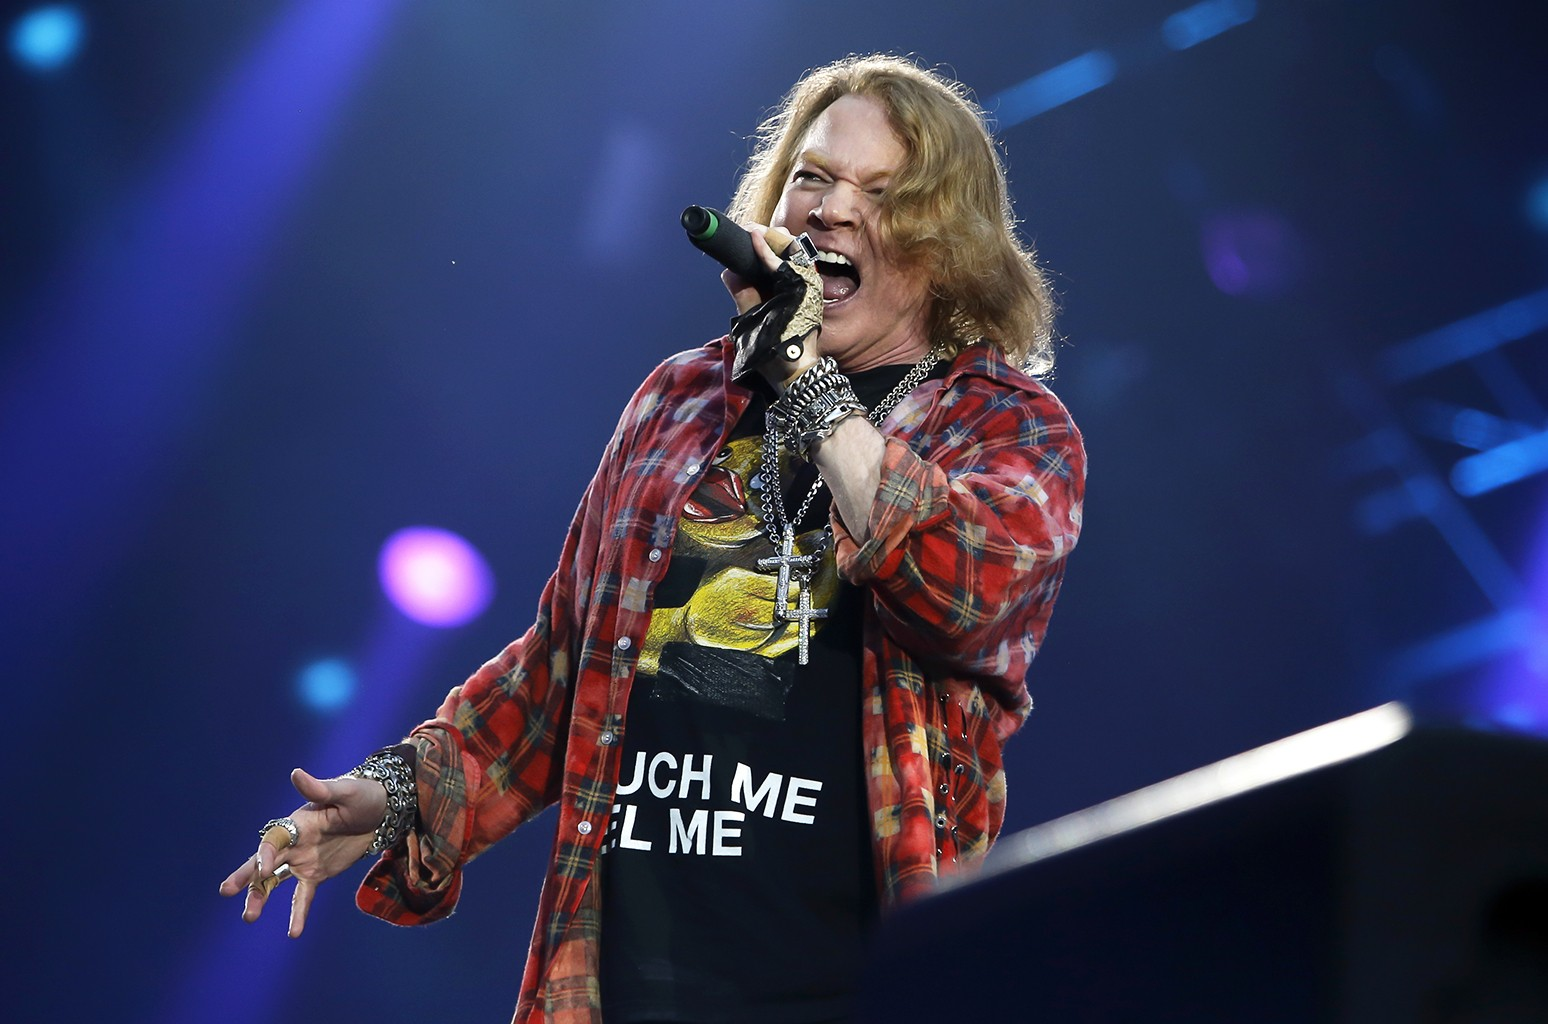 Axl Rose performs in 2016